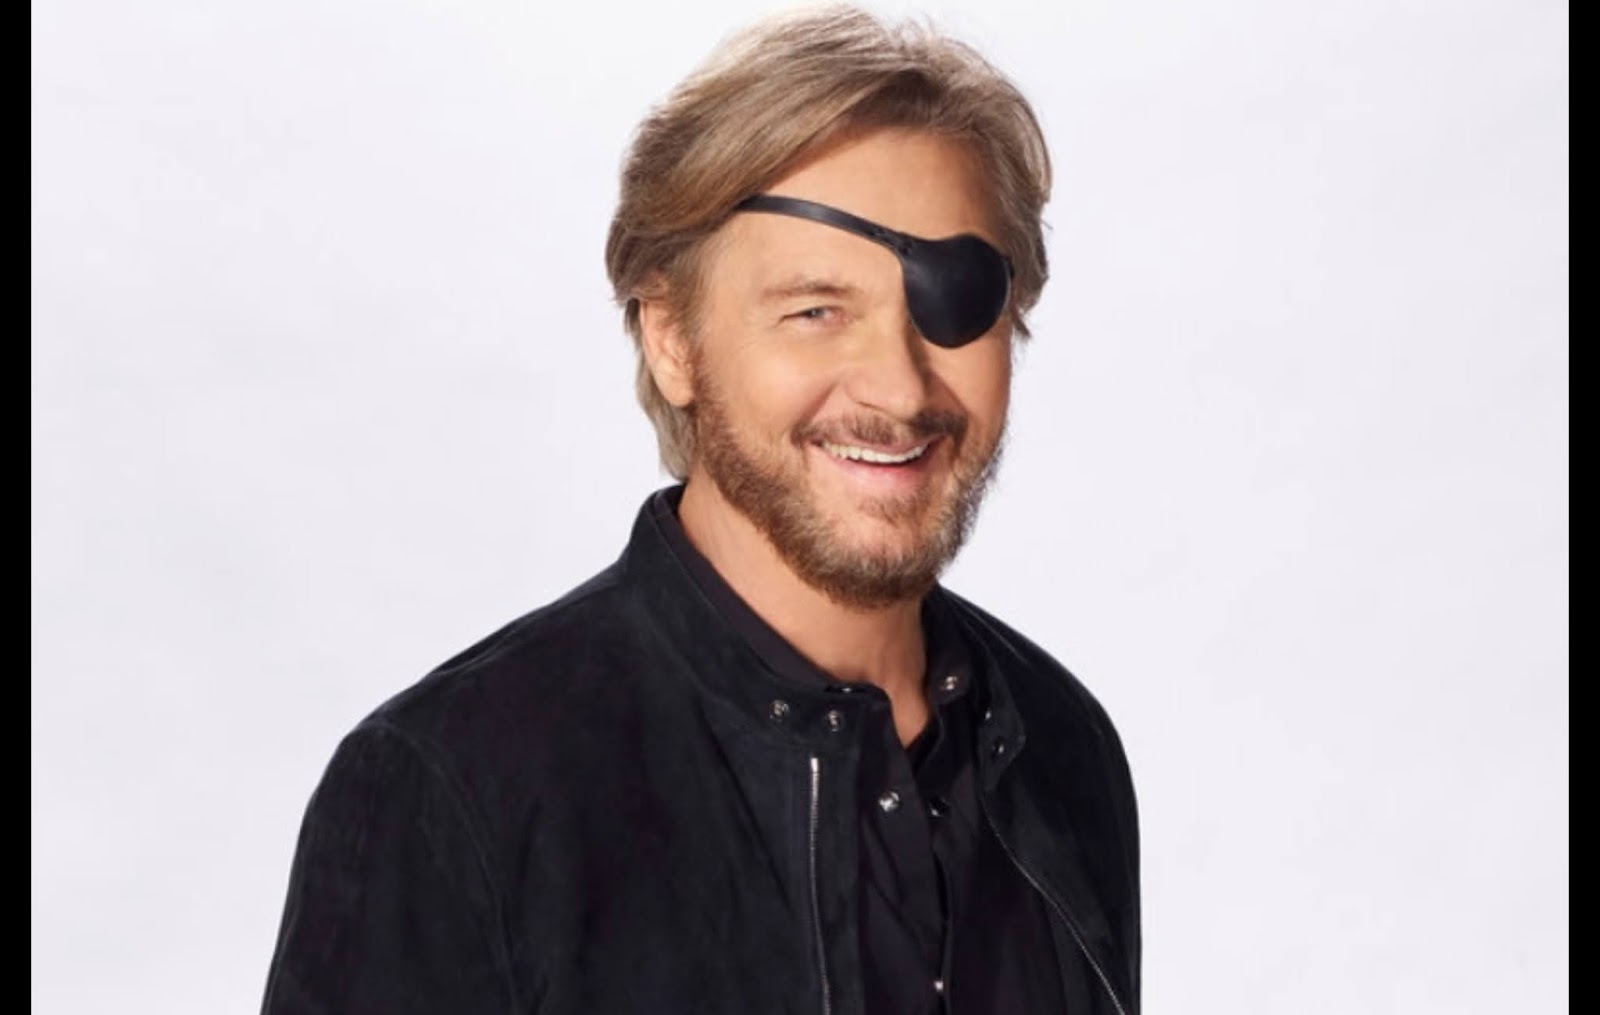 Days Of Our Lives Stephen Nichols Celebrates Grand Birthday Milestone Soap Opera News